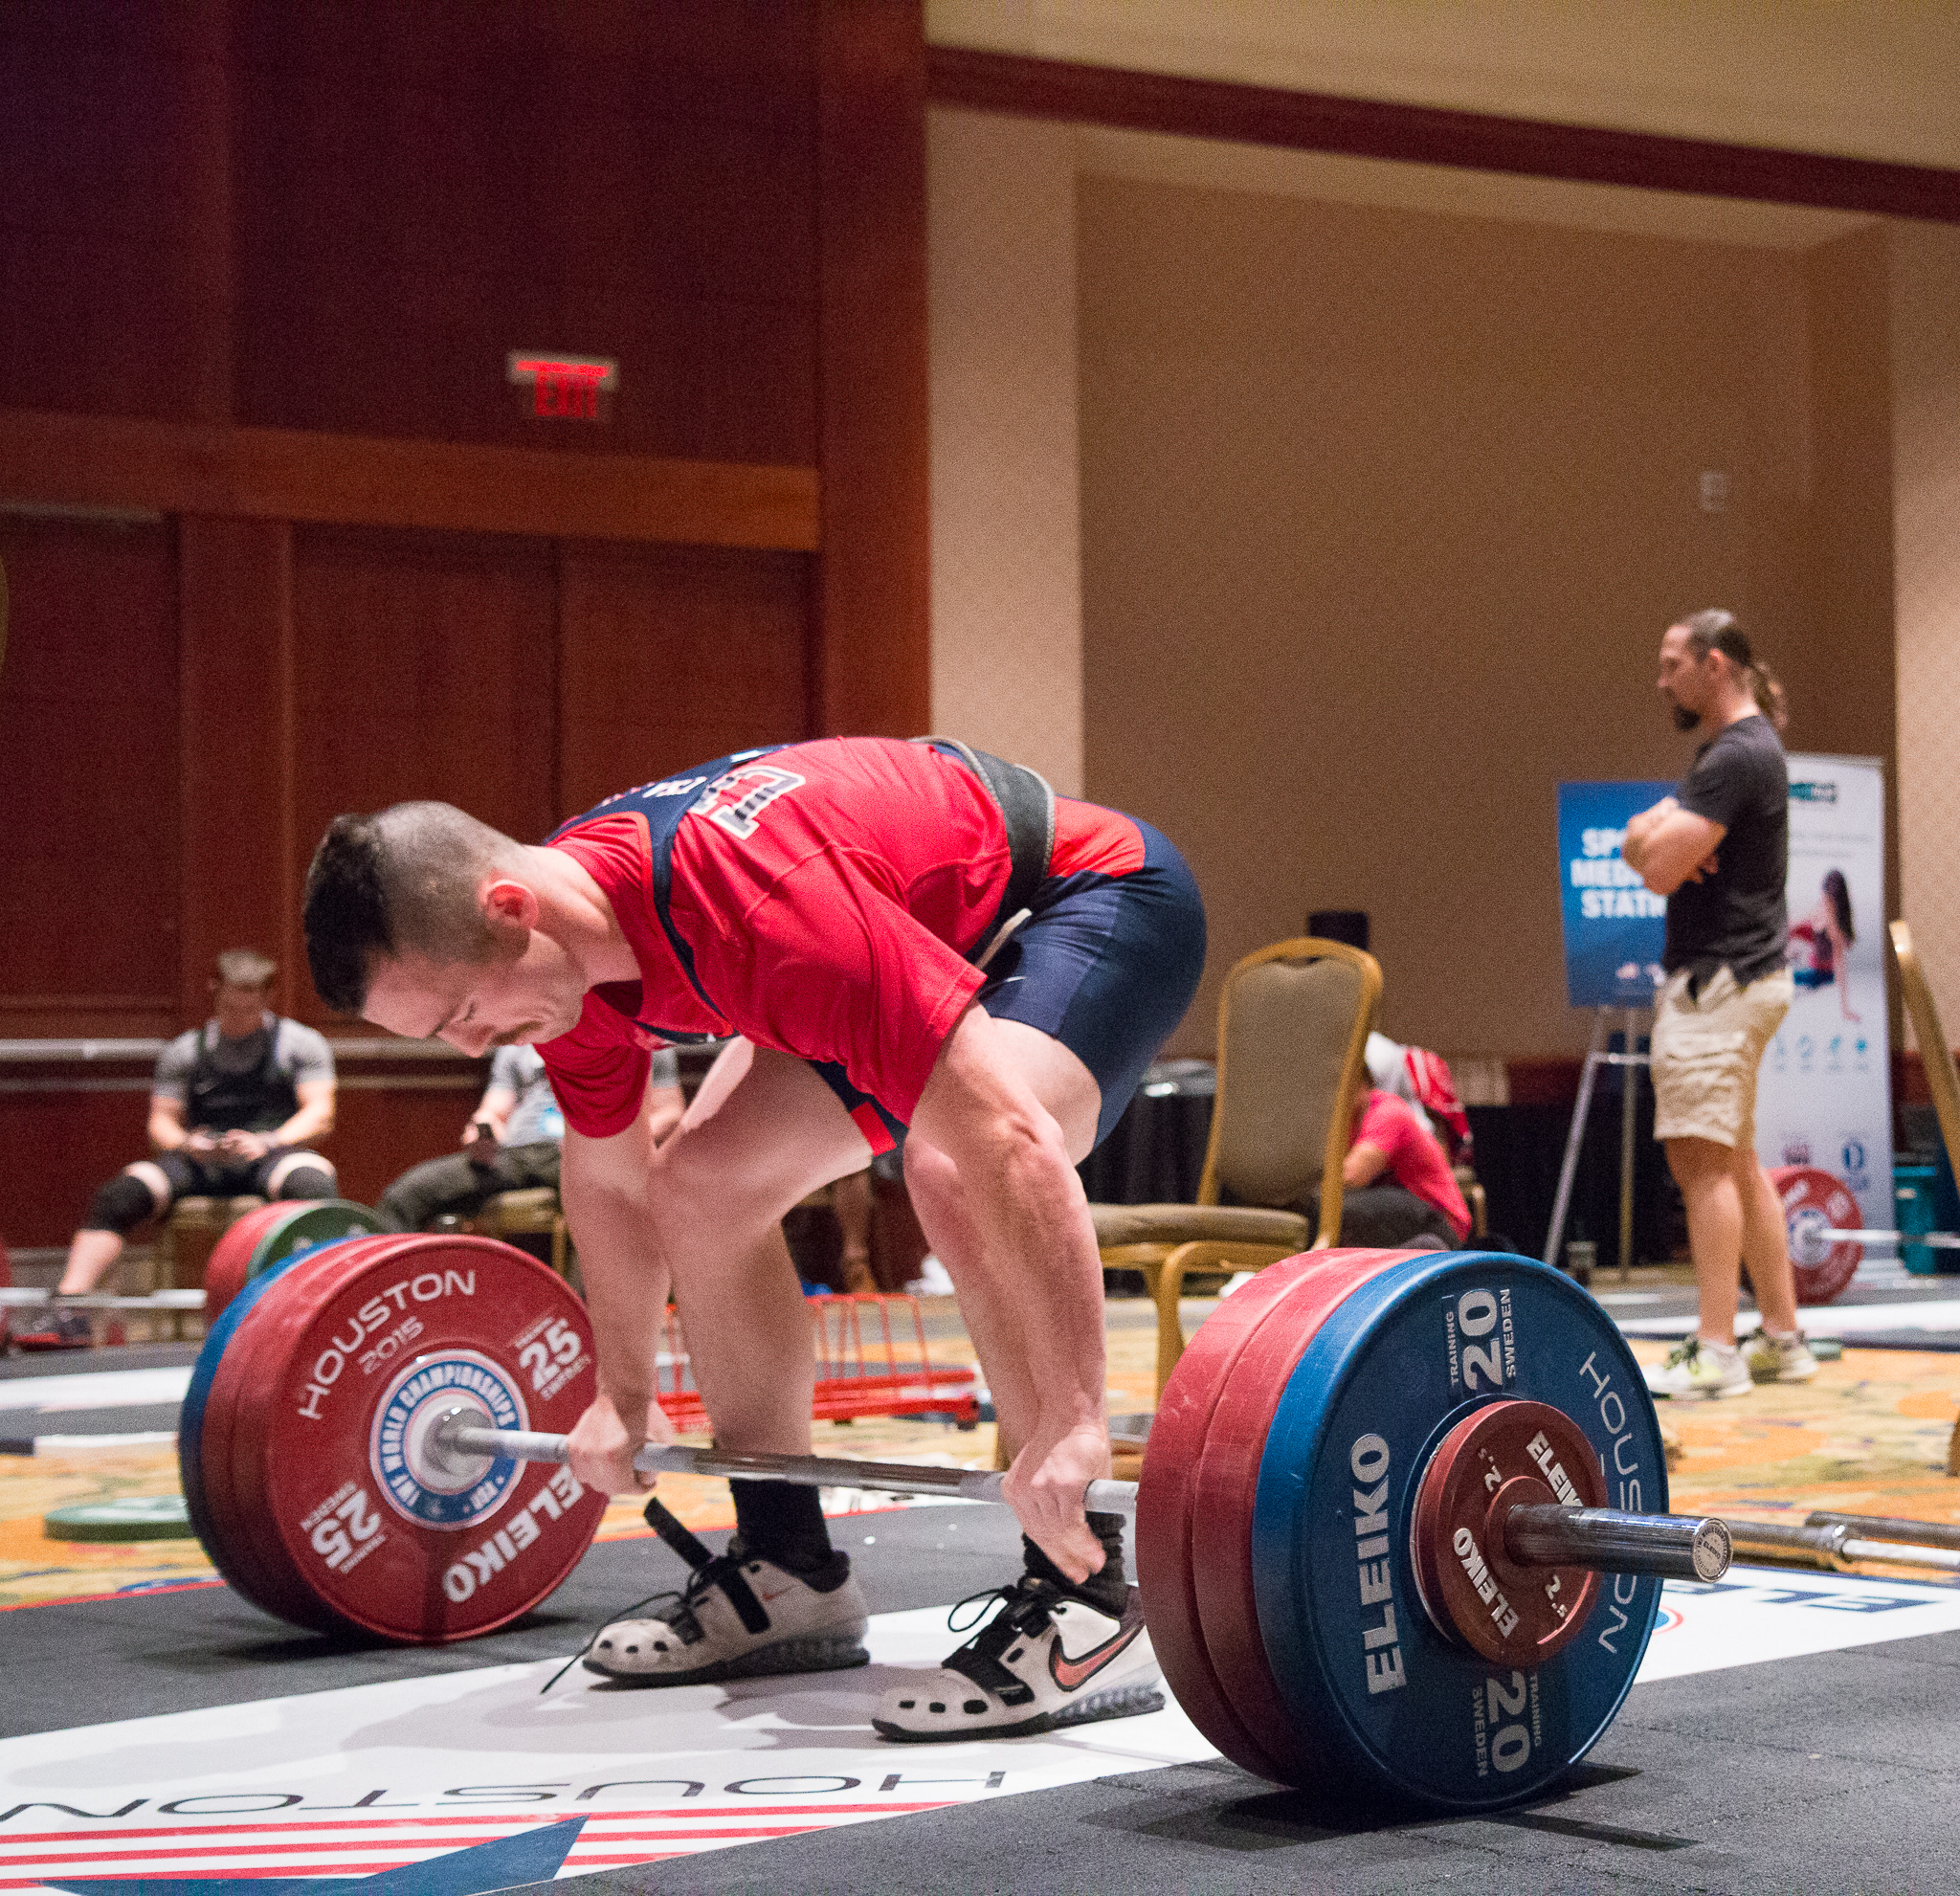 session-a-favorites-american-open-2016-weightlifting-photography (24 of 38).jpg